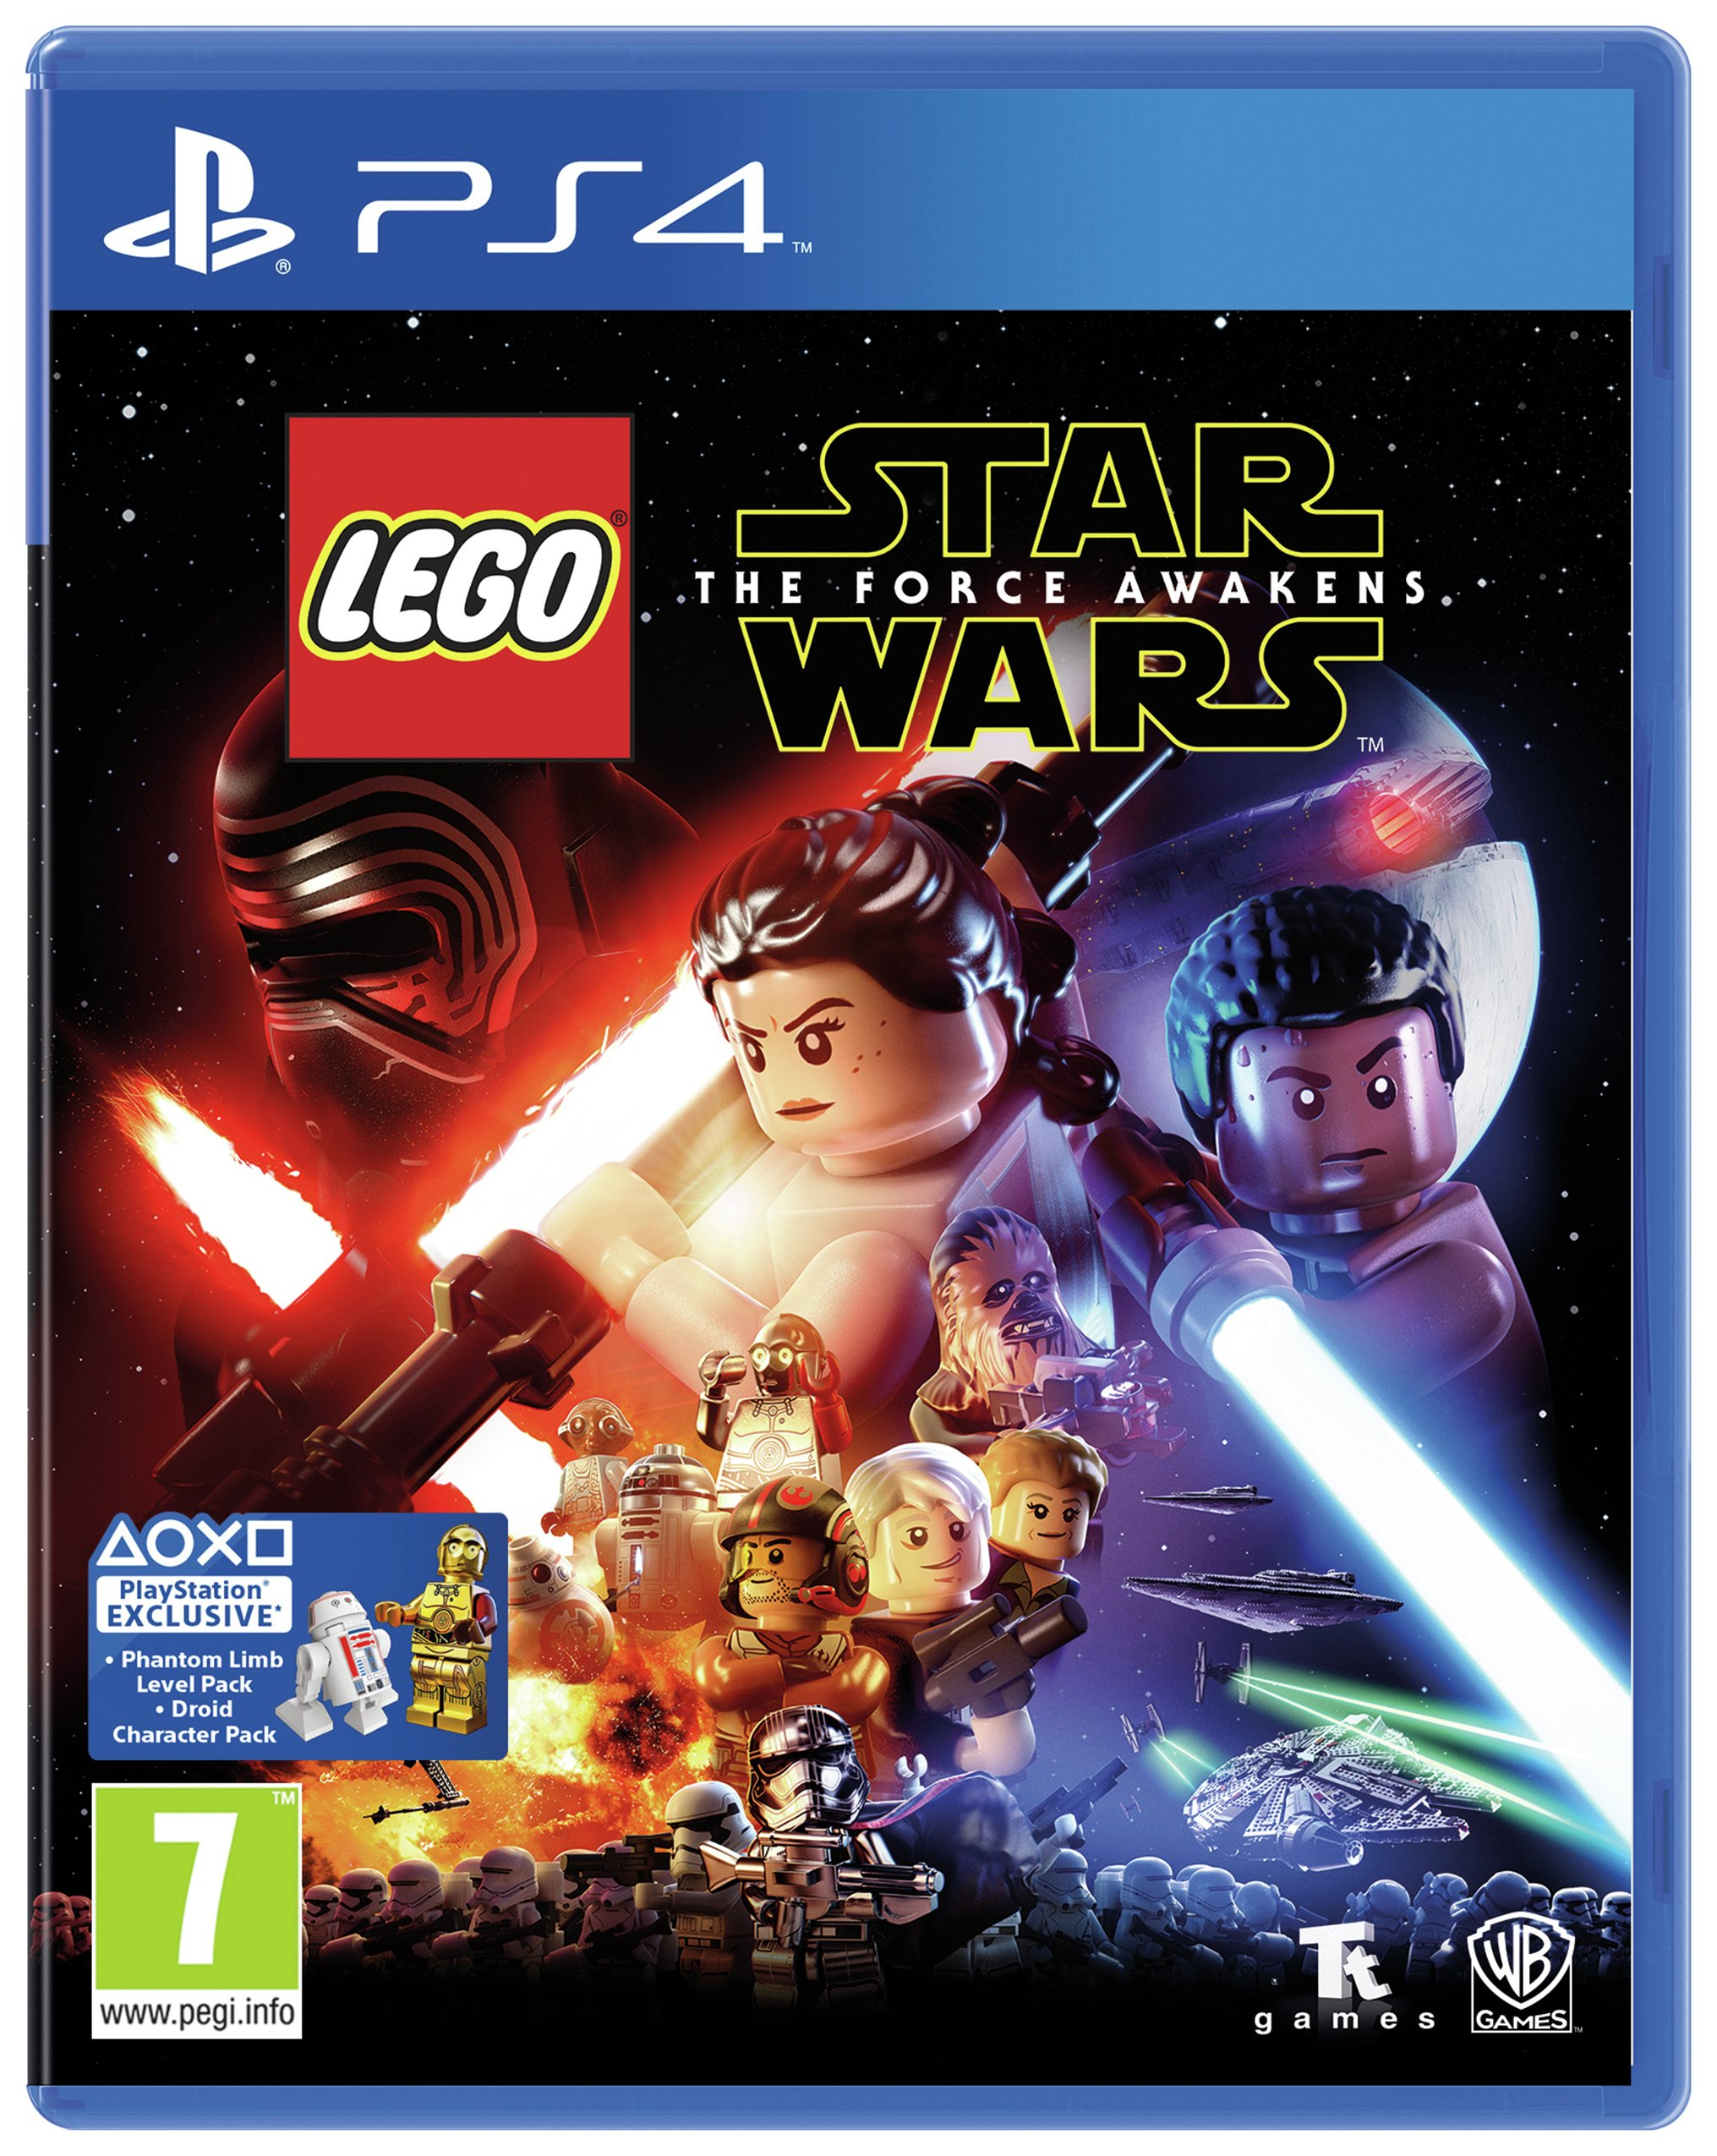 Lego Star Wars: The Force Awakens PS4 Game